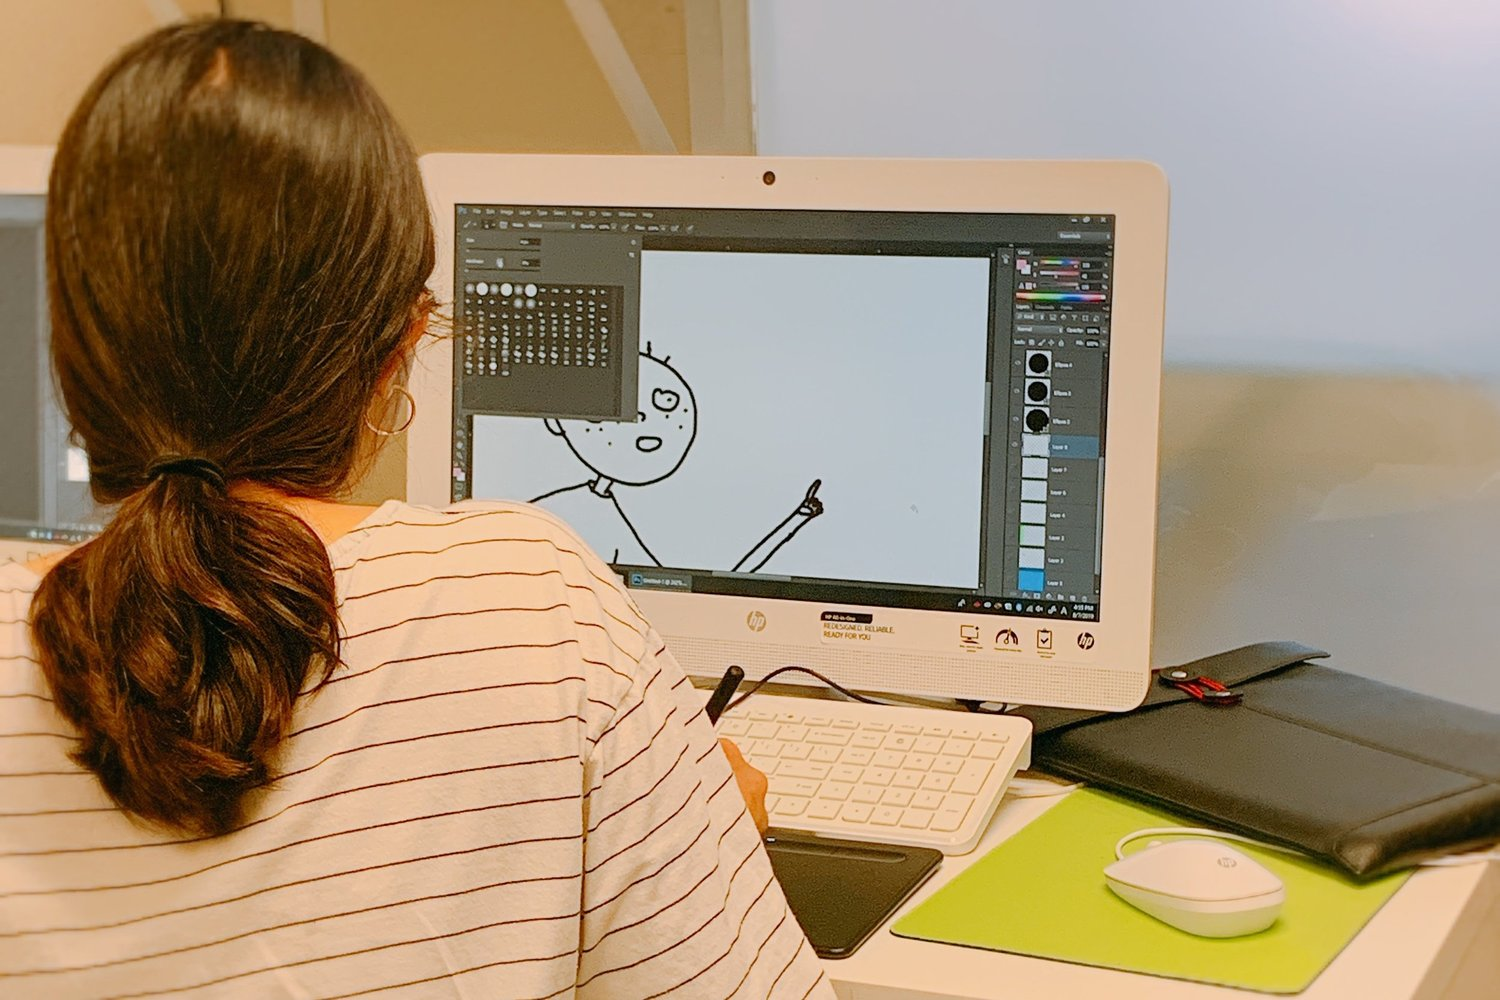 DIGITAL ARTS CLASS - Students will learn how to utilize digital tools in order to paint and draw on a computer. The class focus will be on familiarizing students with these tools and the methods of producing images using Photoshop.